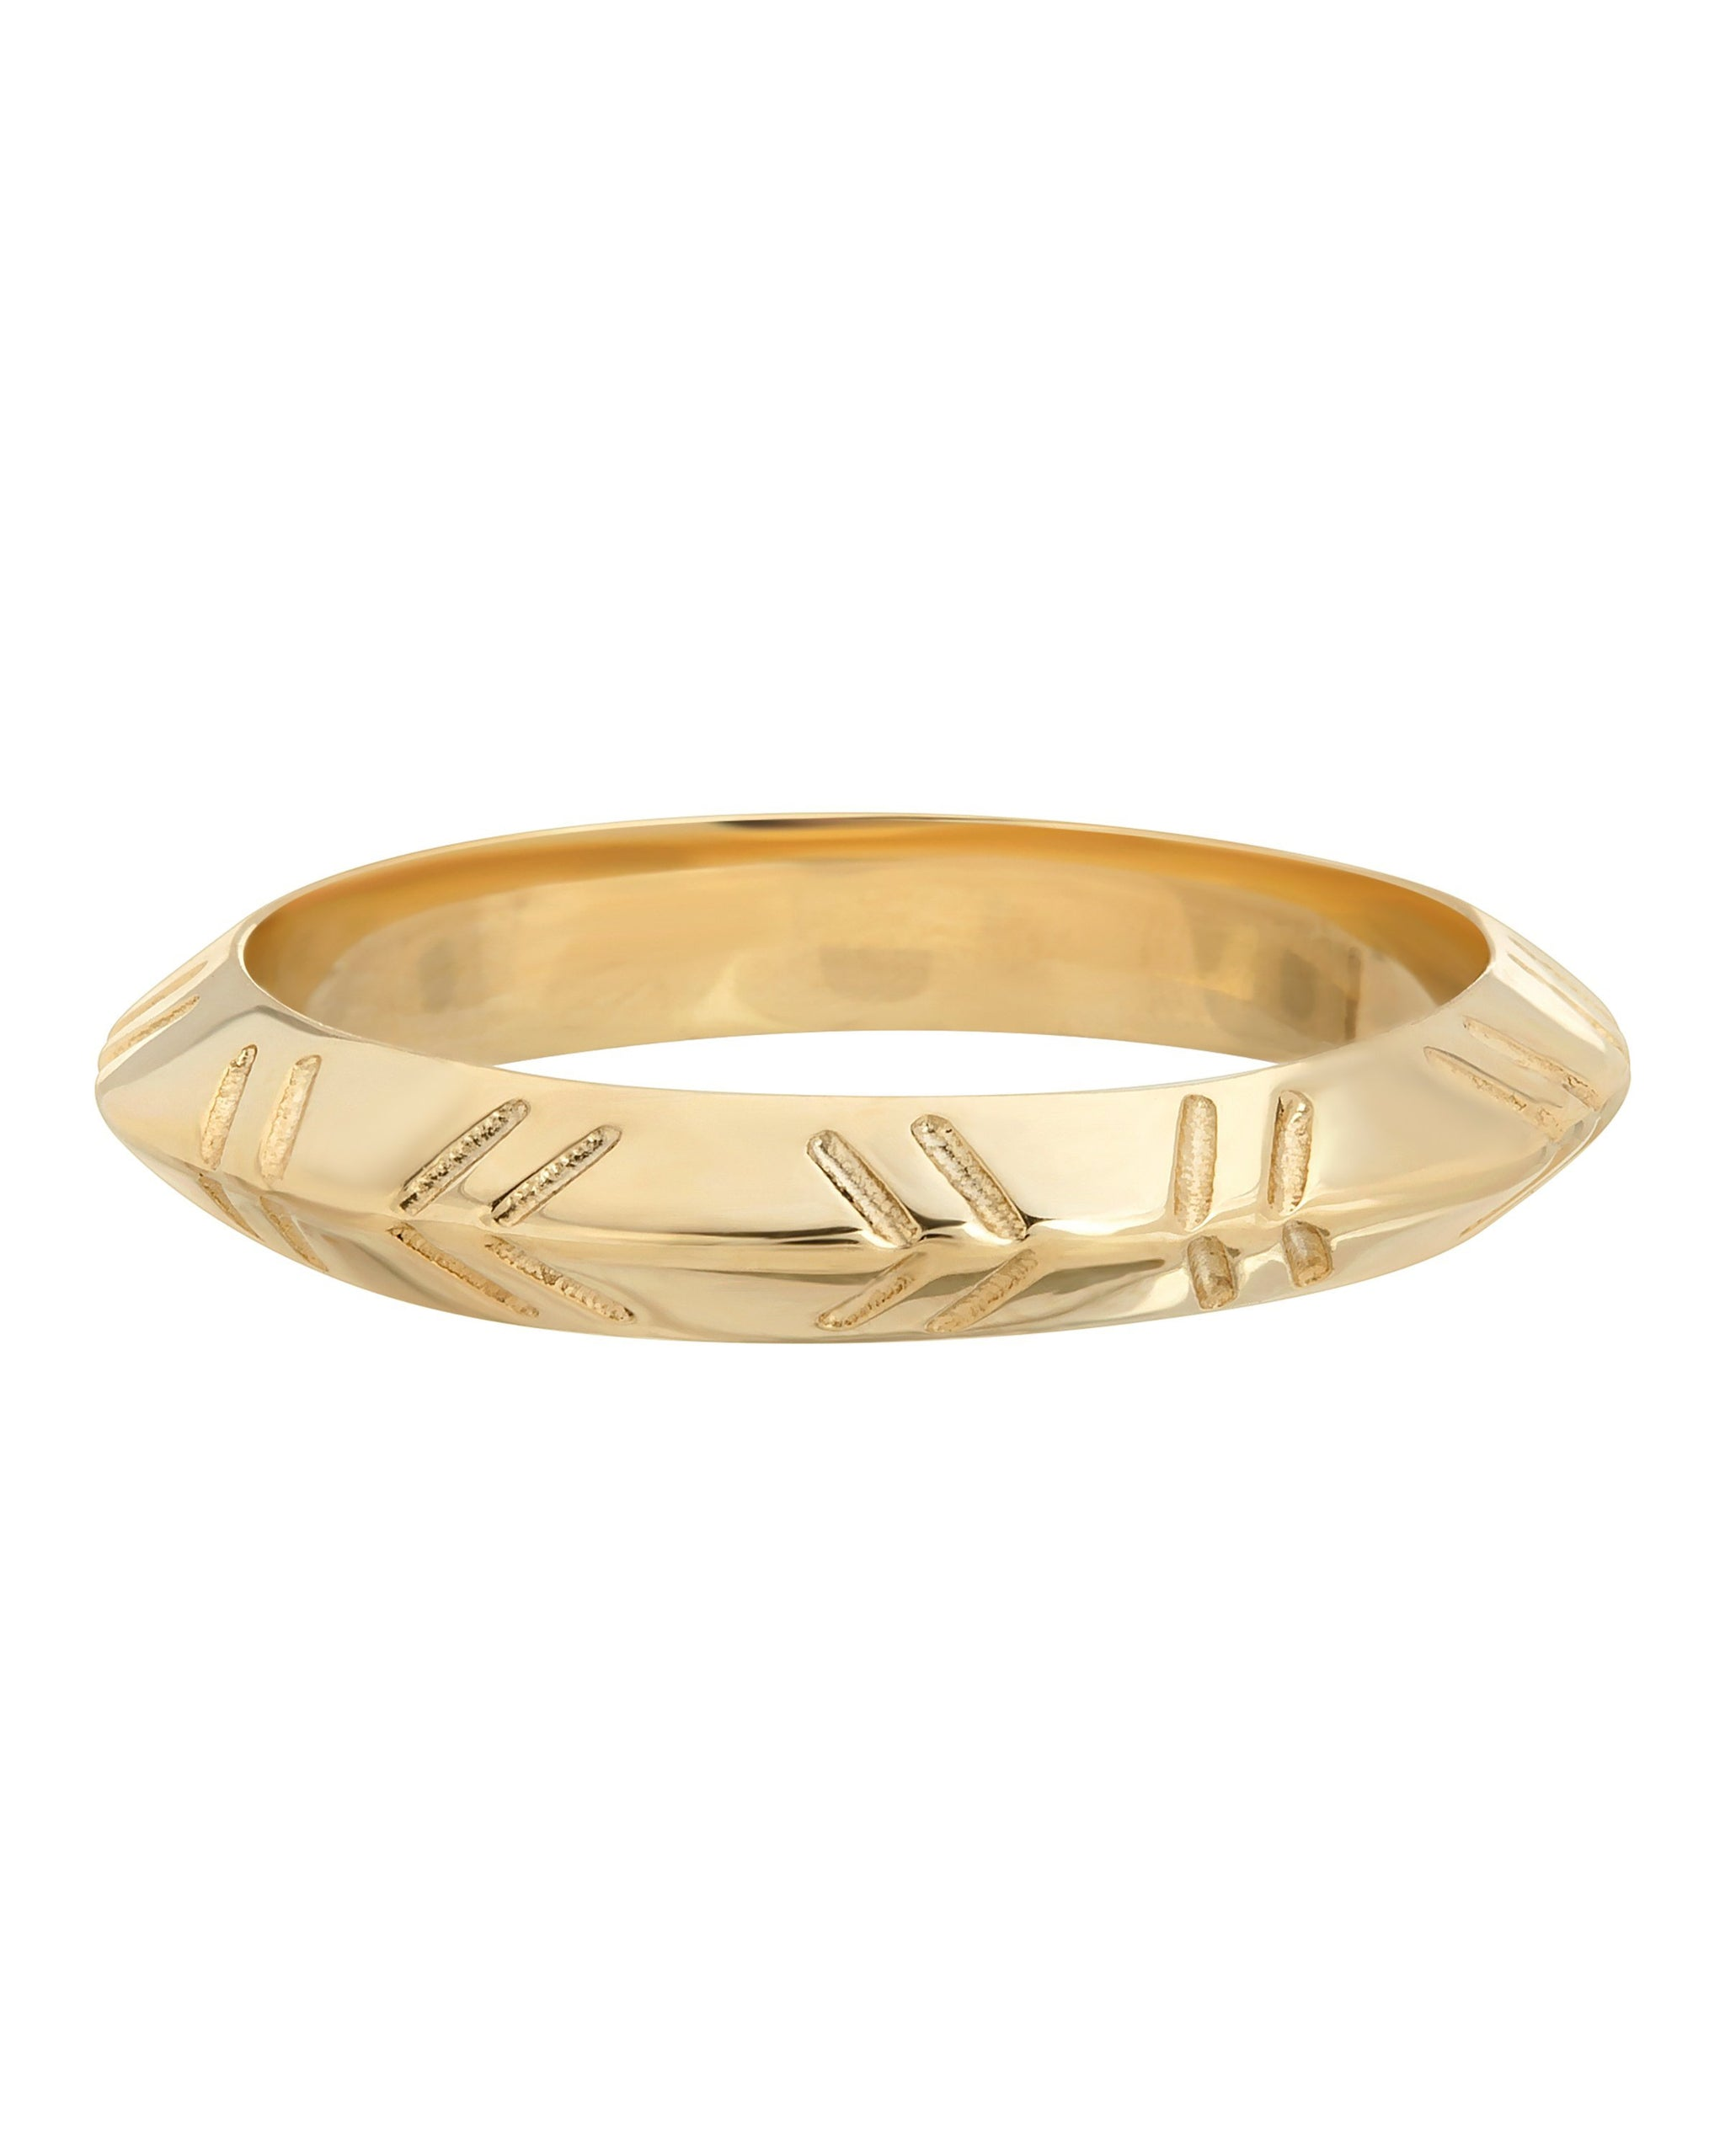 Chevron Knife Edge Ring, 14k Gold Vermeil, handmade by Turquoise + Tobacco in Los Angeles, California